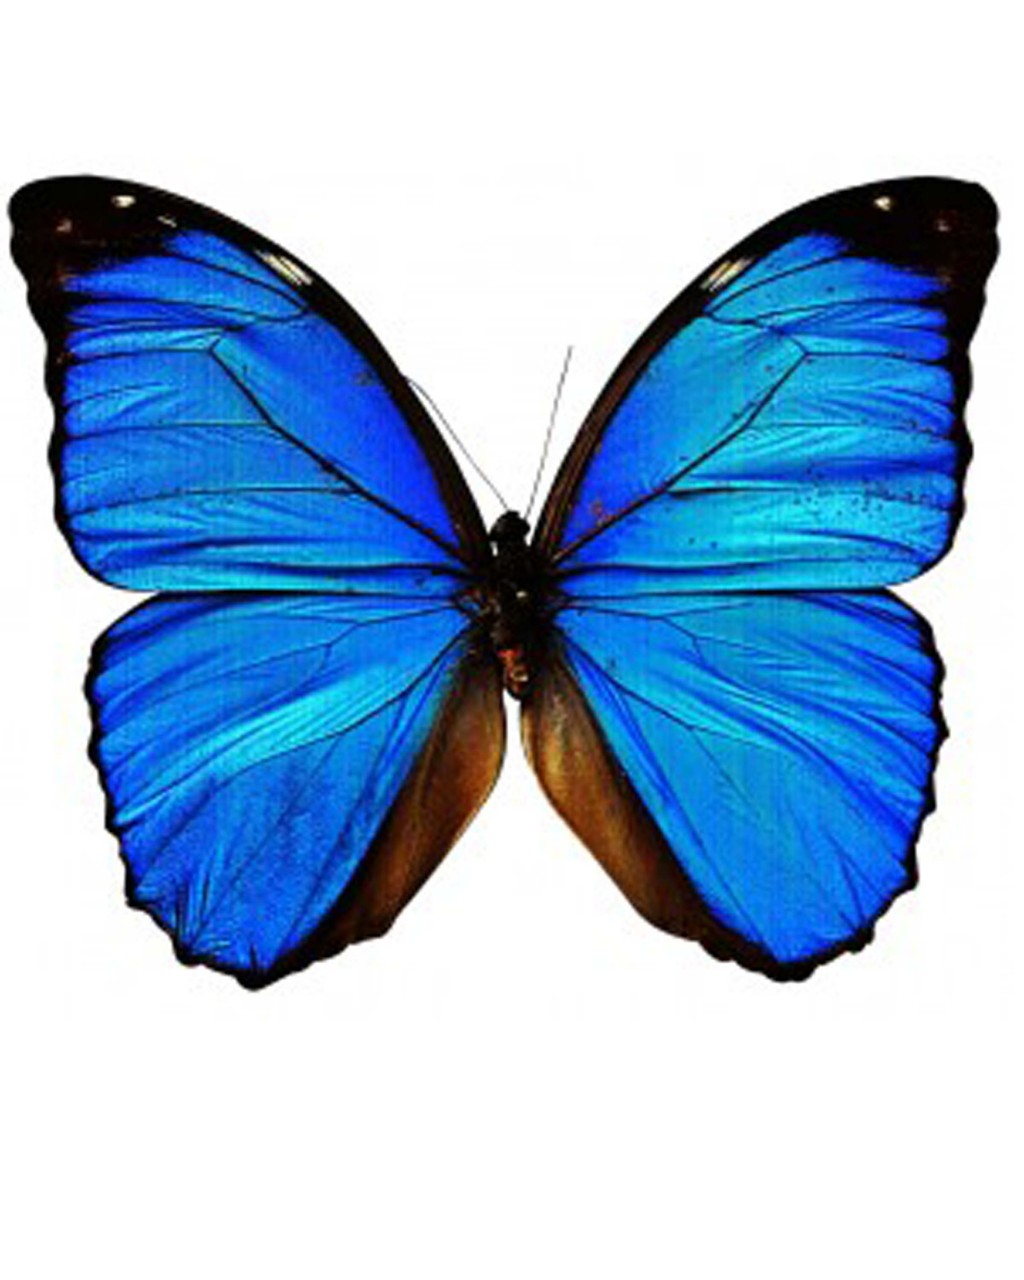 Drawn butterfly blue butterfly Clipart Butterfly Panda Free Clipart